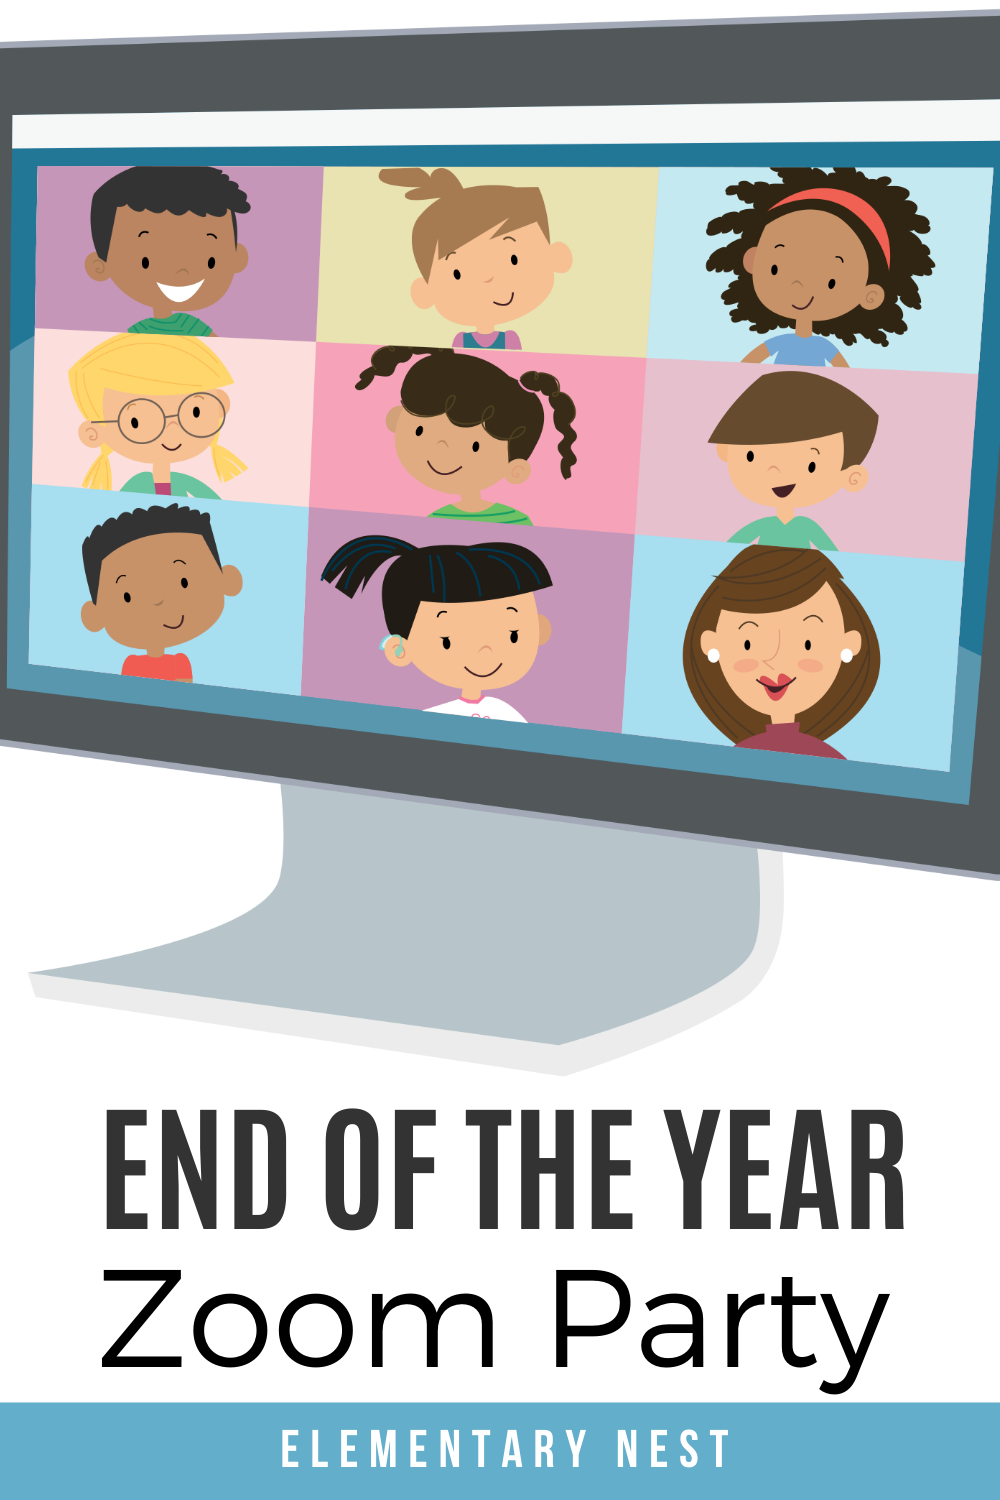 Pin on End of year ideas